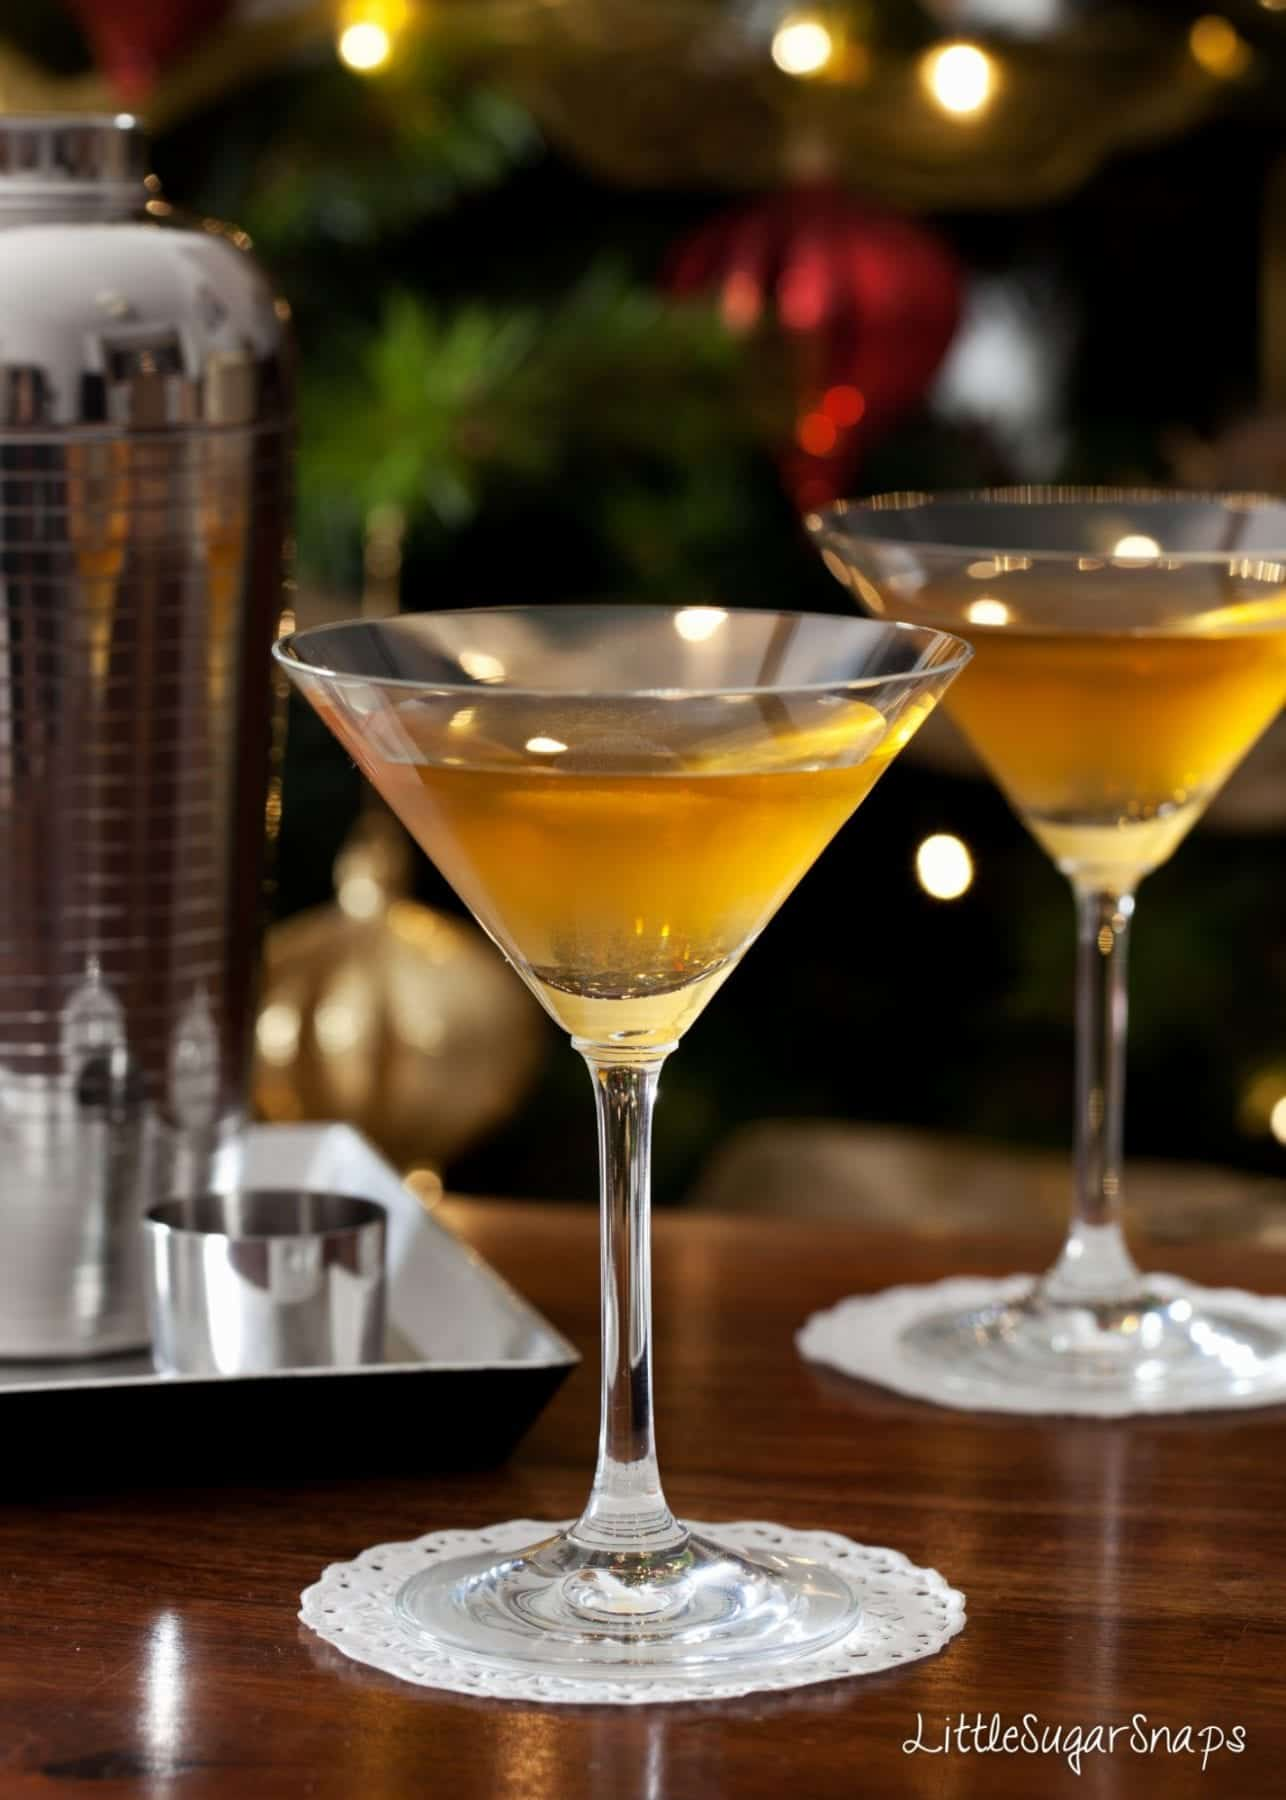 Amaretto cocktails served in martini glasses on a wooden table